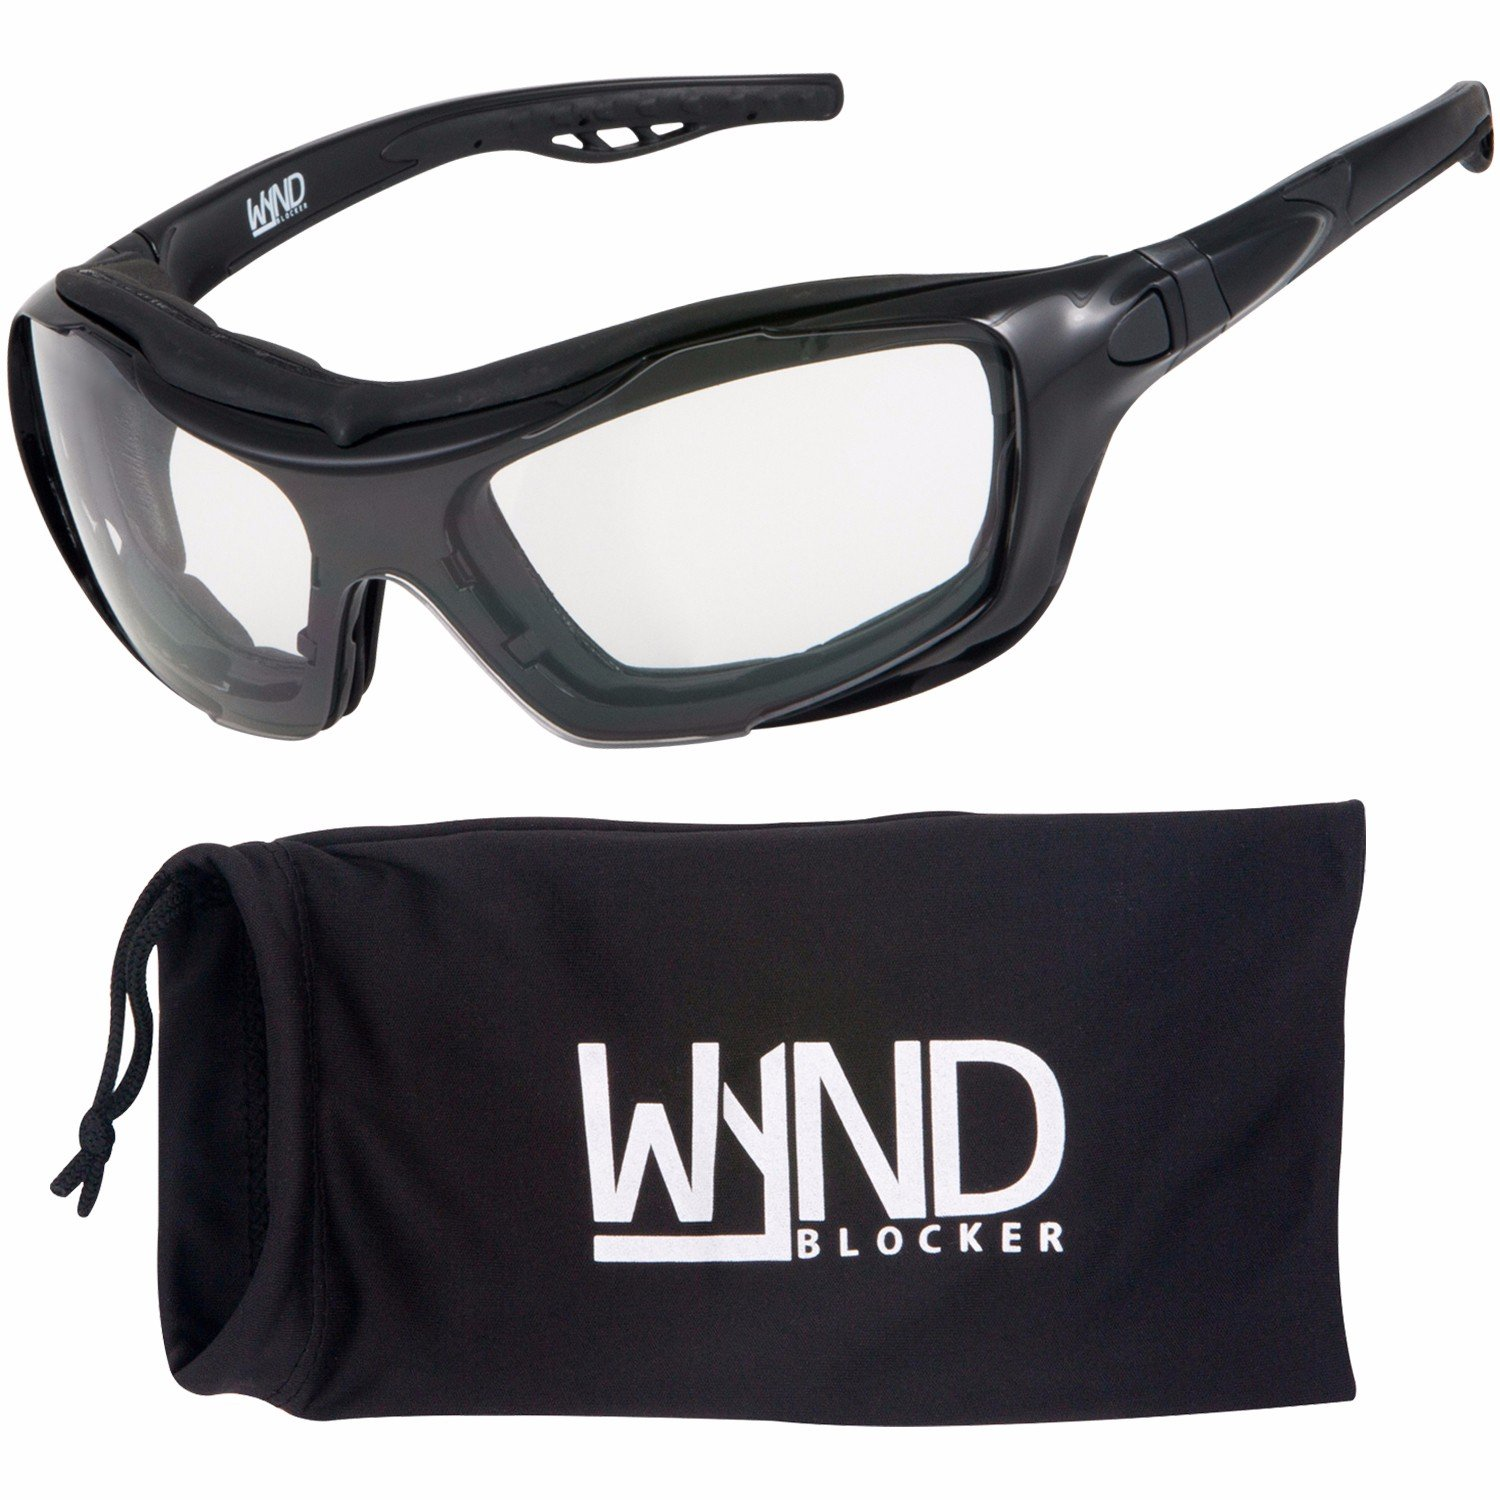 WYND Blocker Motorcycle Riding Glasses Extreme Sports Wrap Sunglasses (Black/Clear) by WYND Blocker